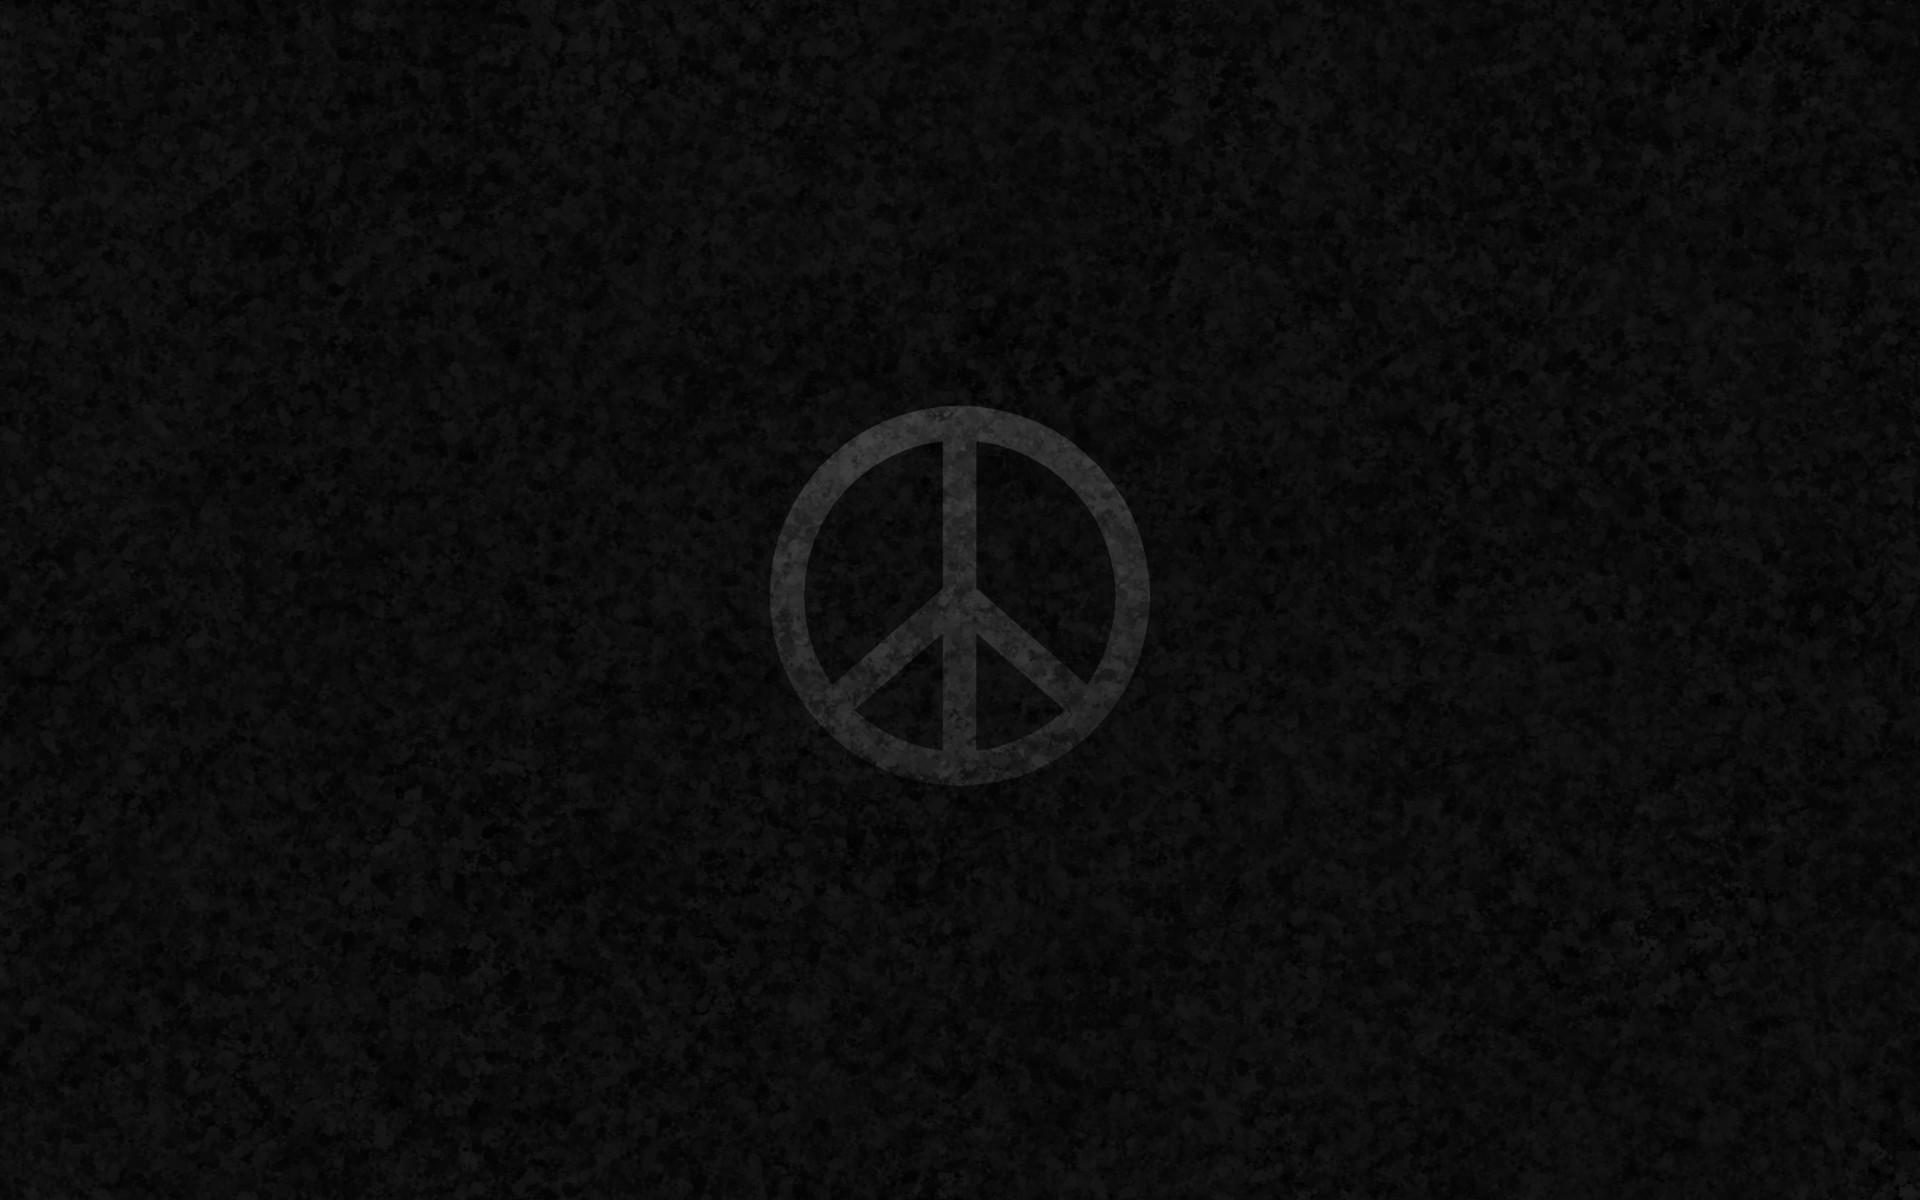 Peace Sign Wallpapers 62 Images